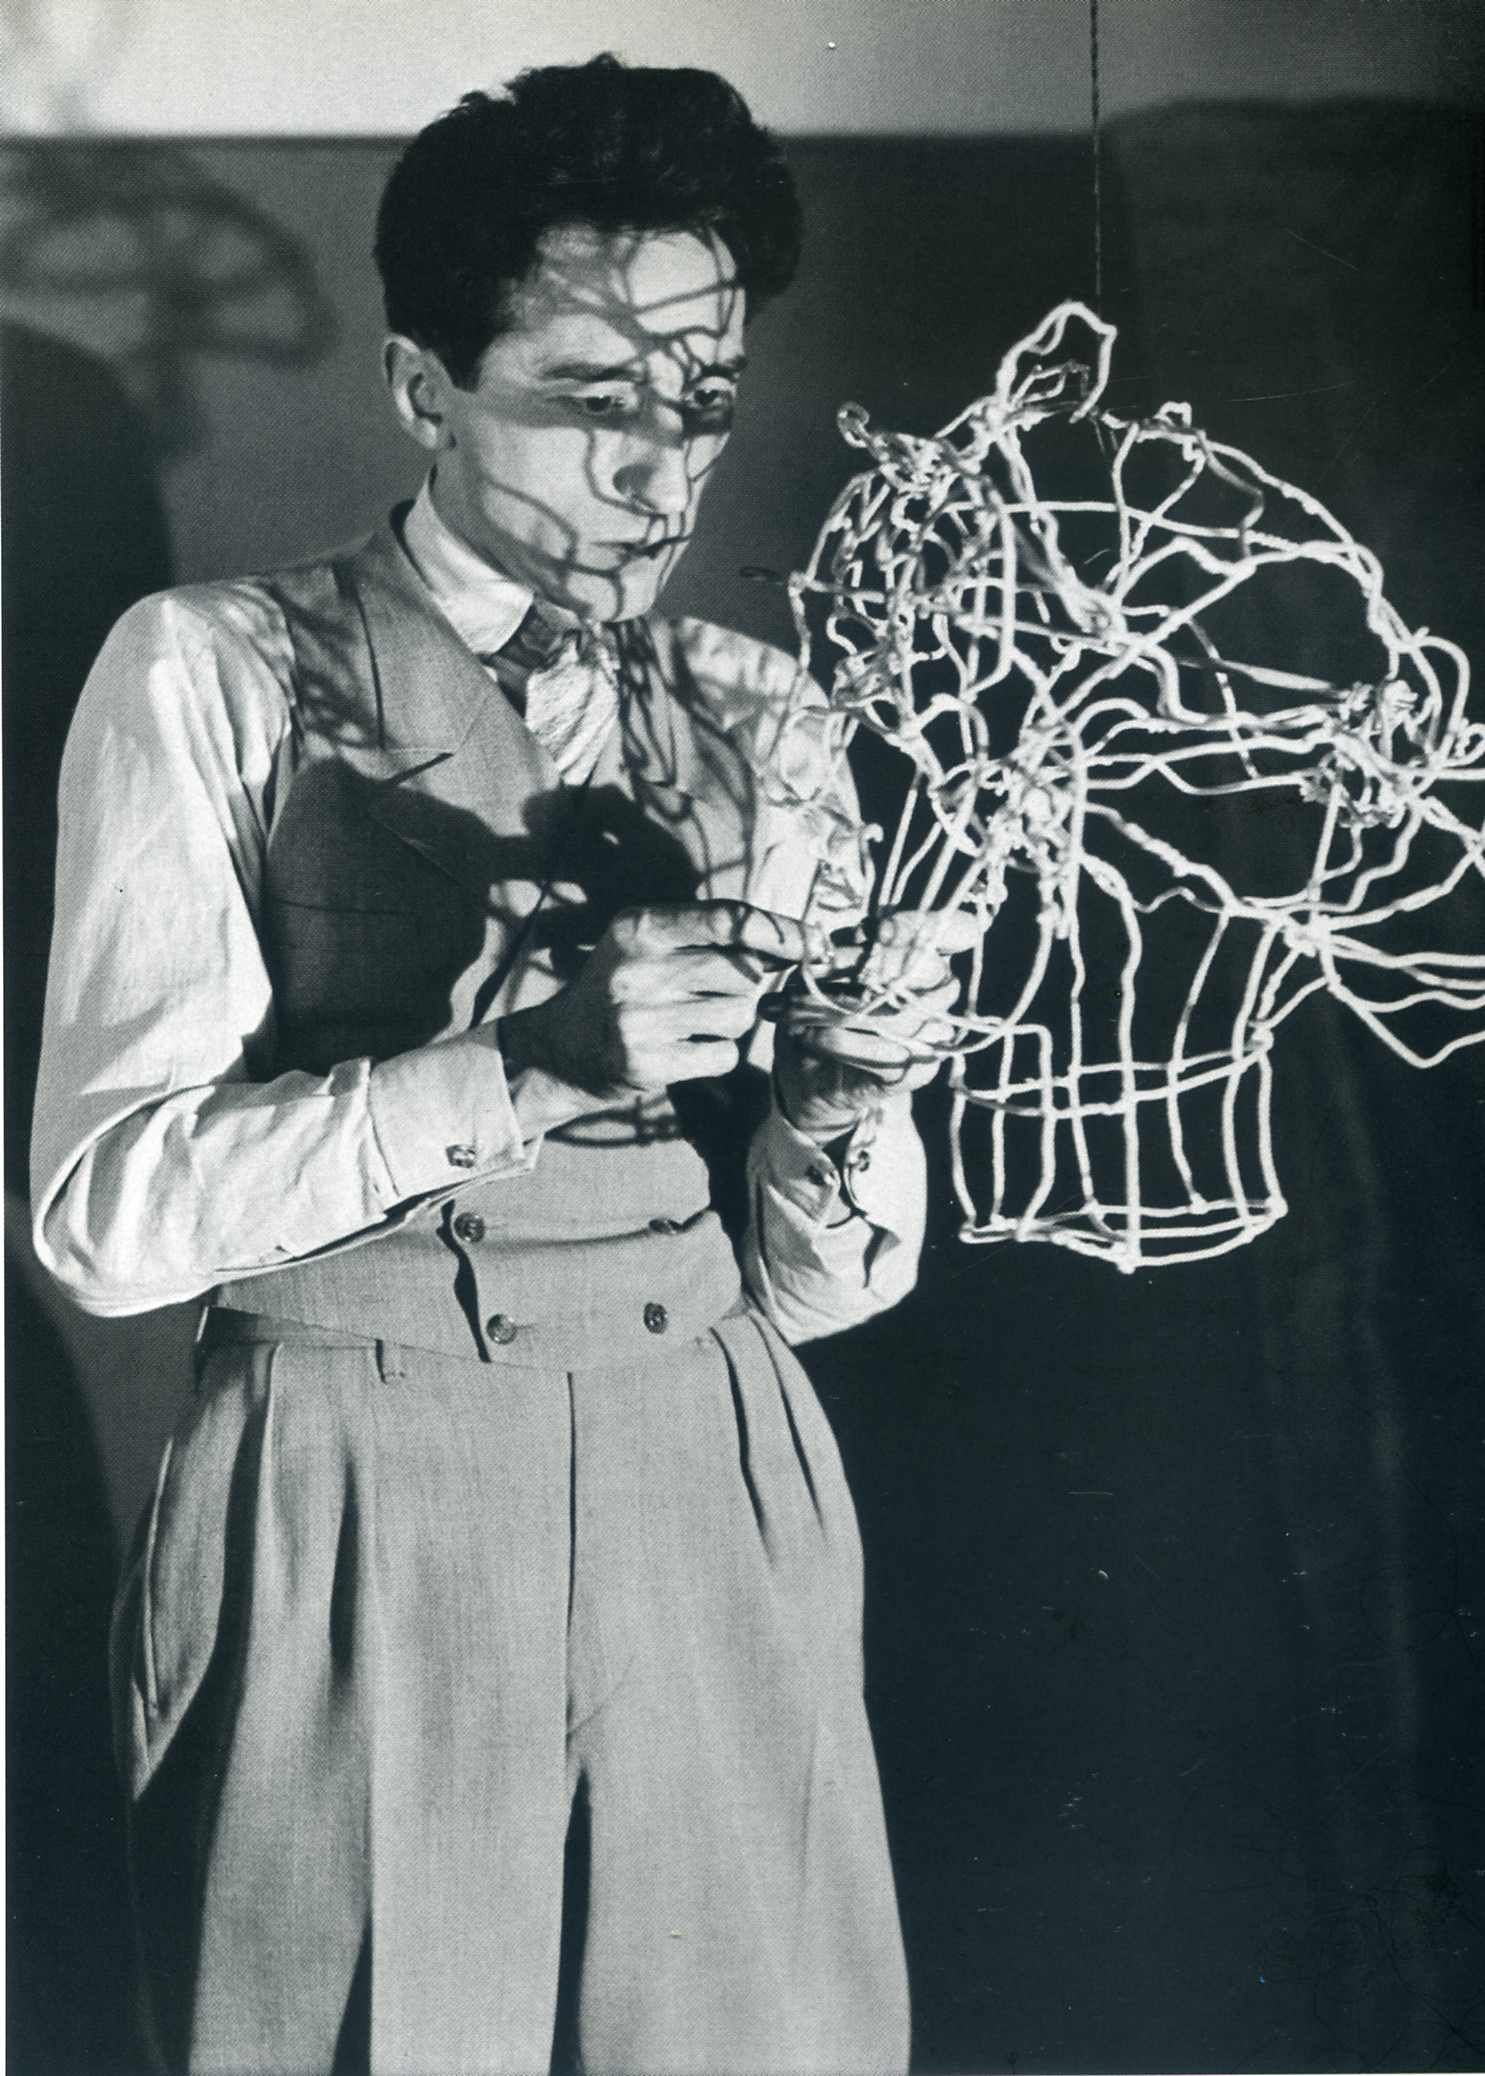 Jean Cocteau sculpting his own head in wire, 1920s. Photo: Man Ray ...